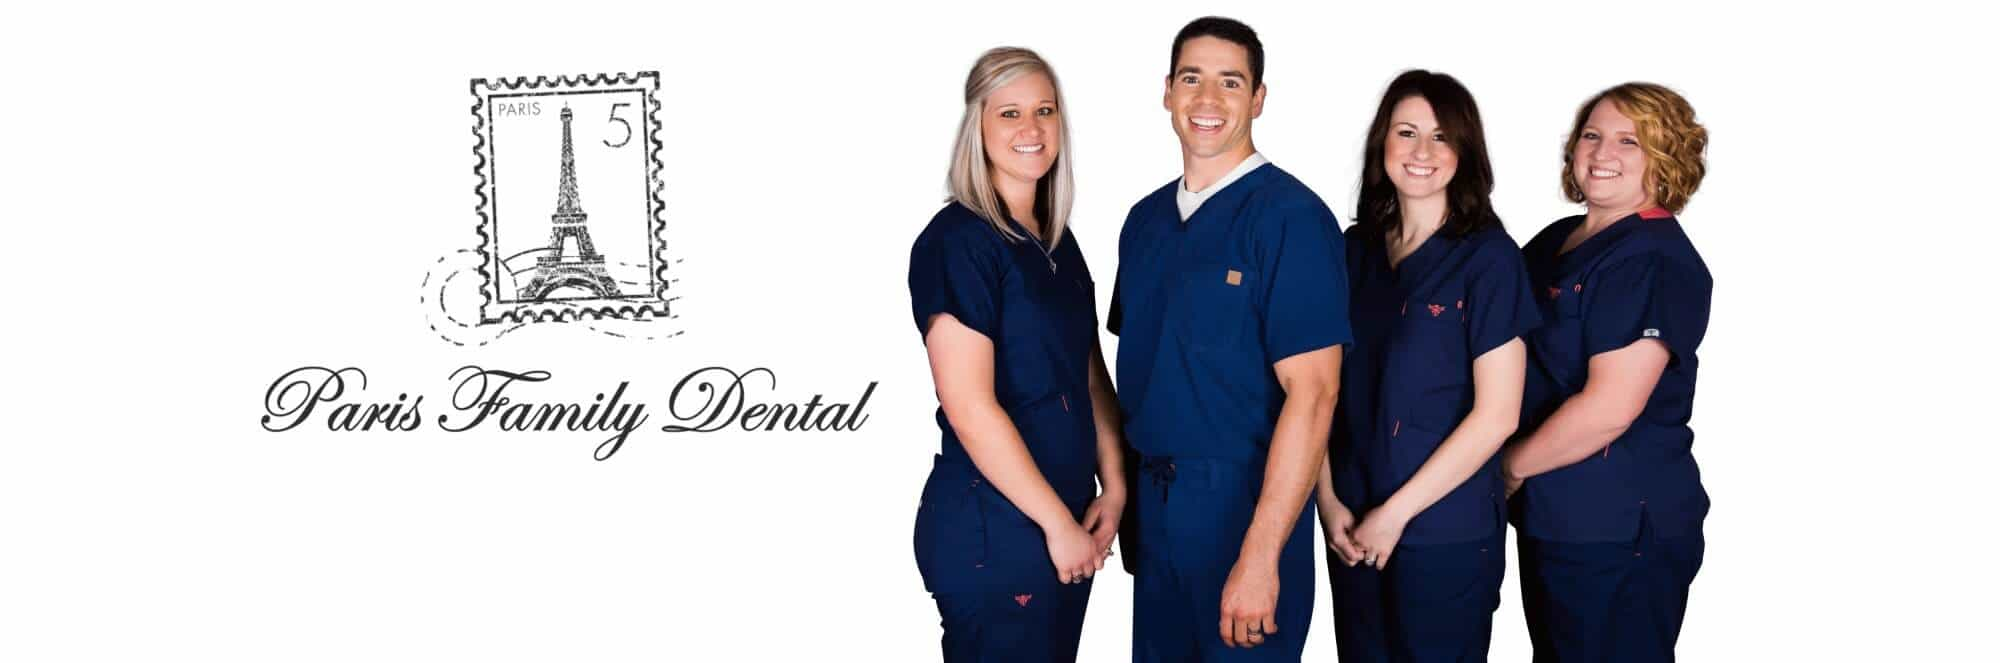 Dental Paris Texas - Header 1